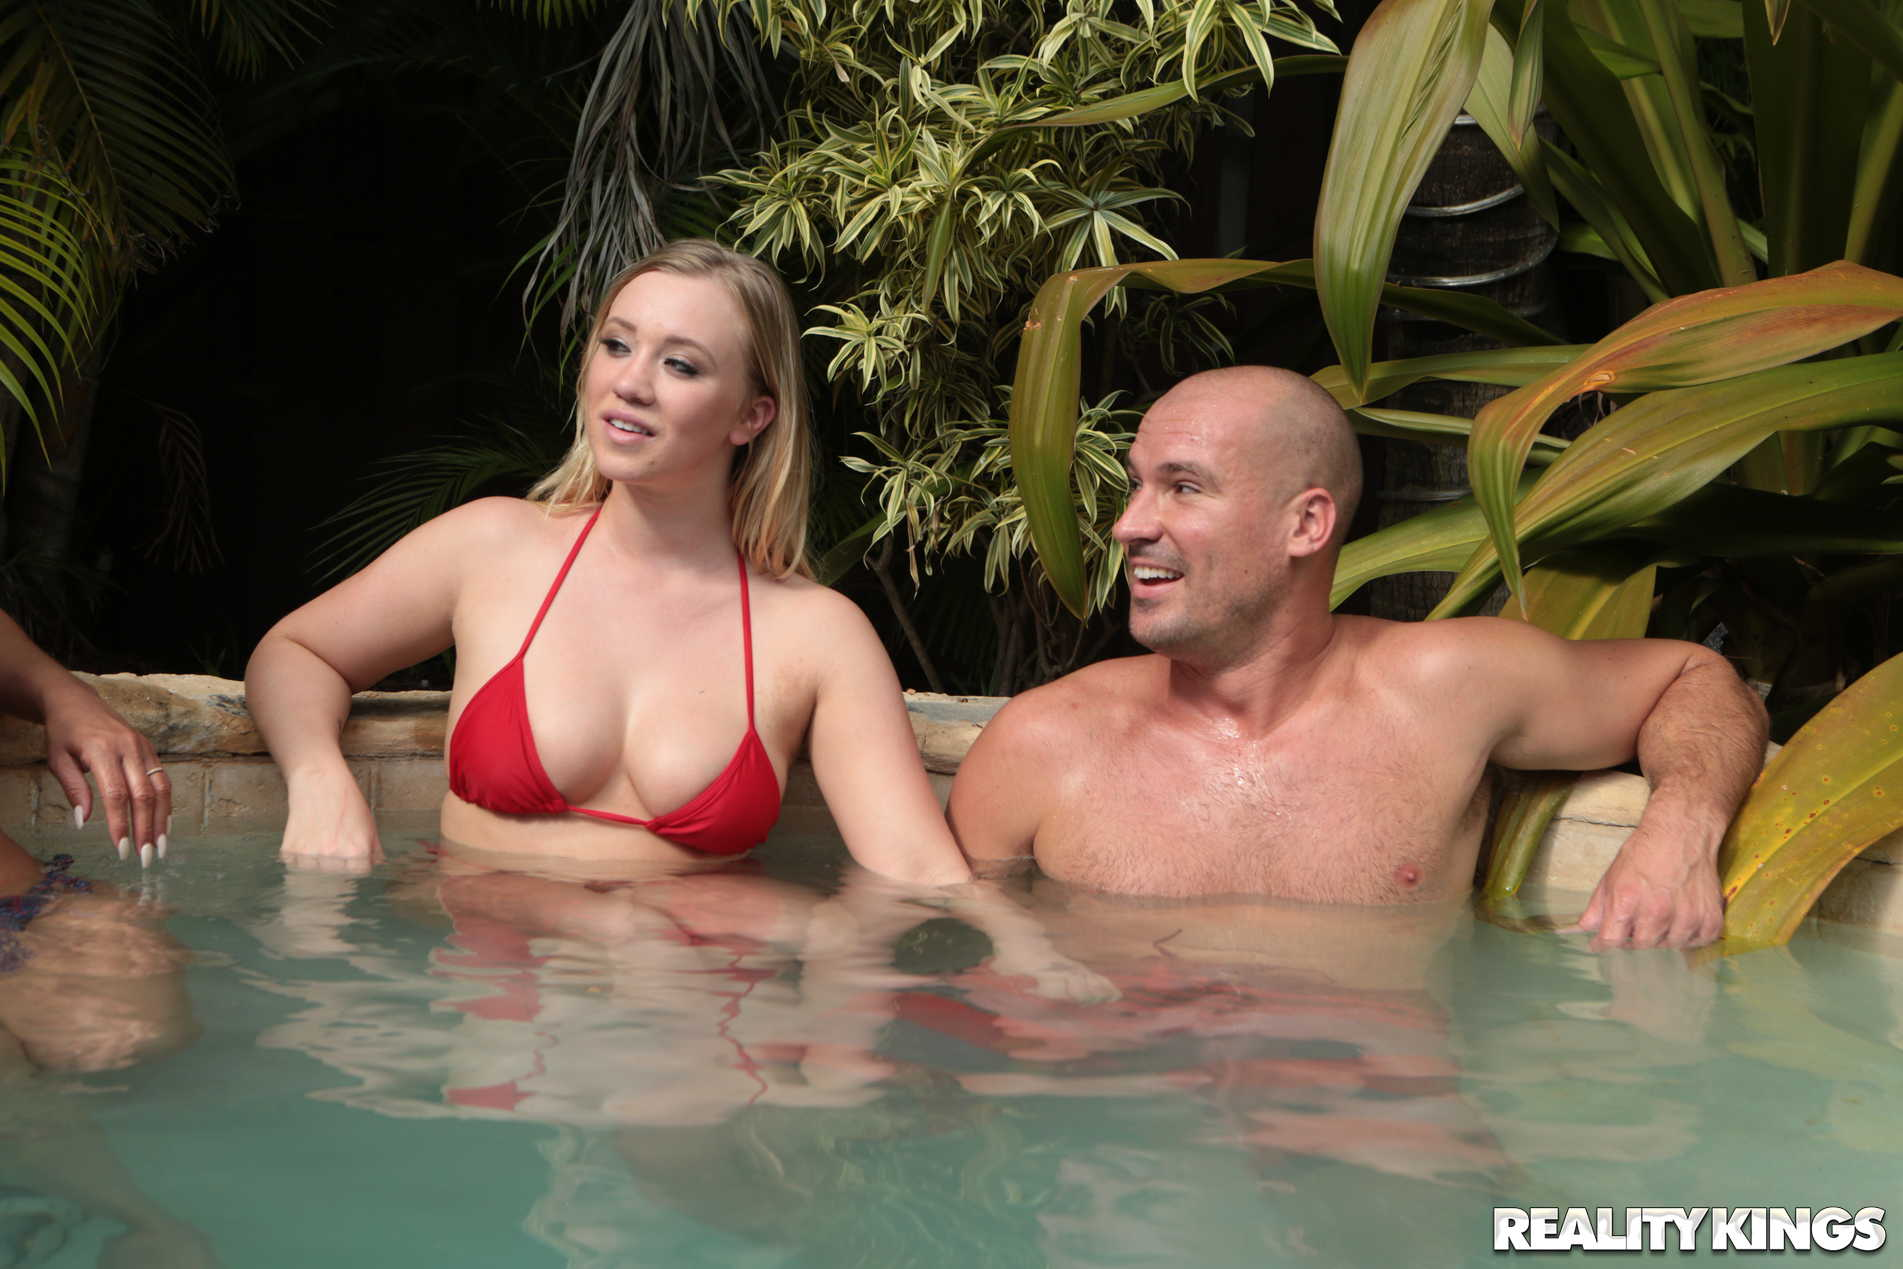 Reality Kings 'Dicking In The Deep End' starring Bailey Brooke (Photo 96)